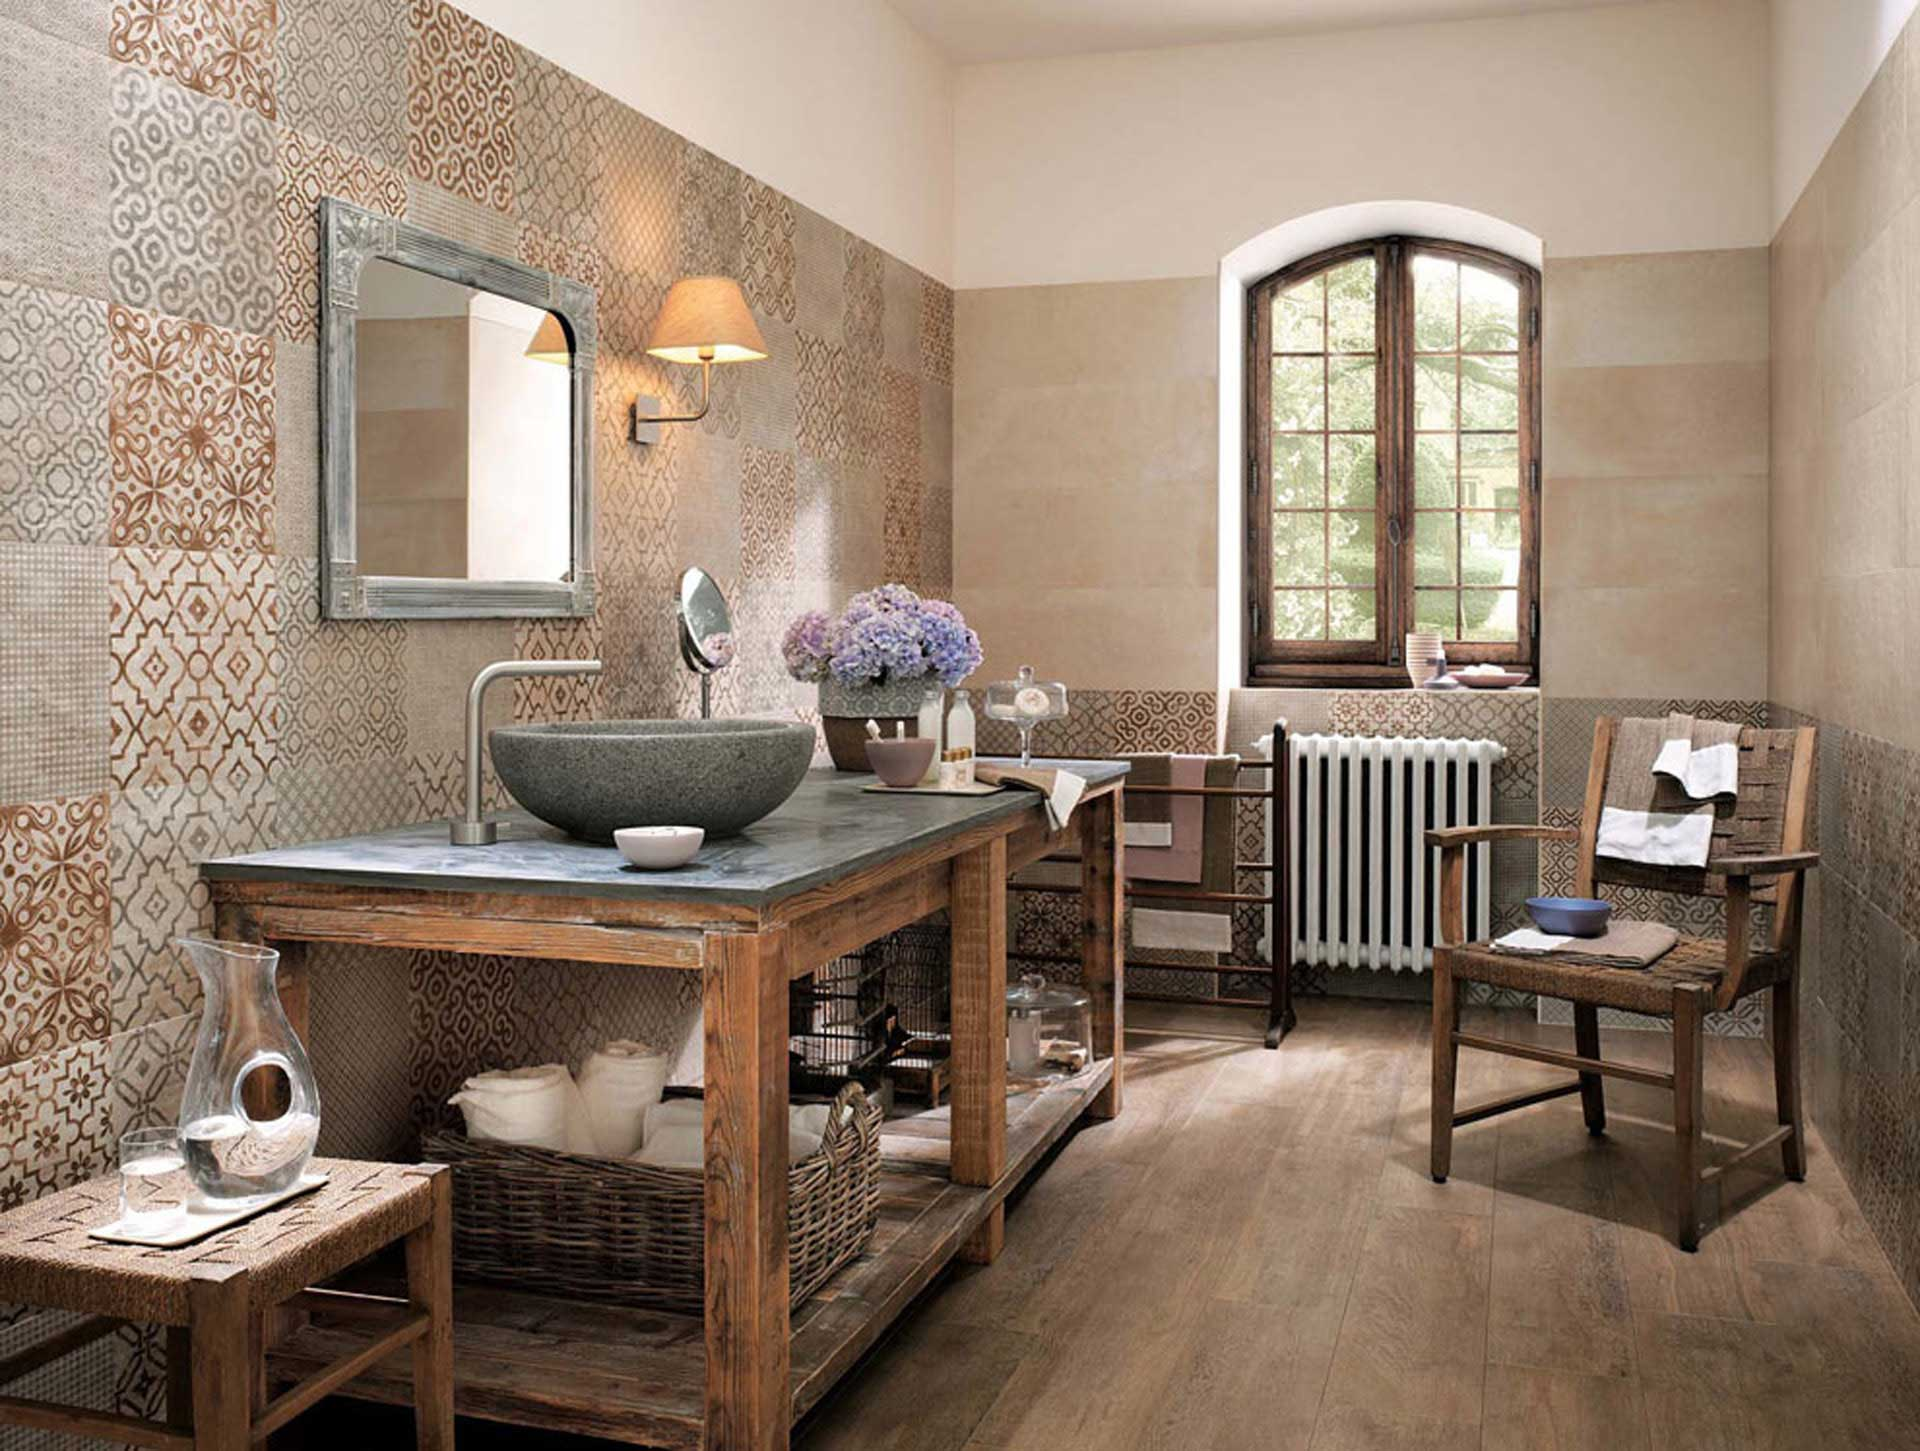 Bagno shabby chic e romantico orsolini - Accessori per cucina country ...